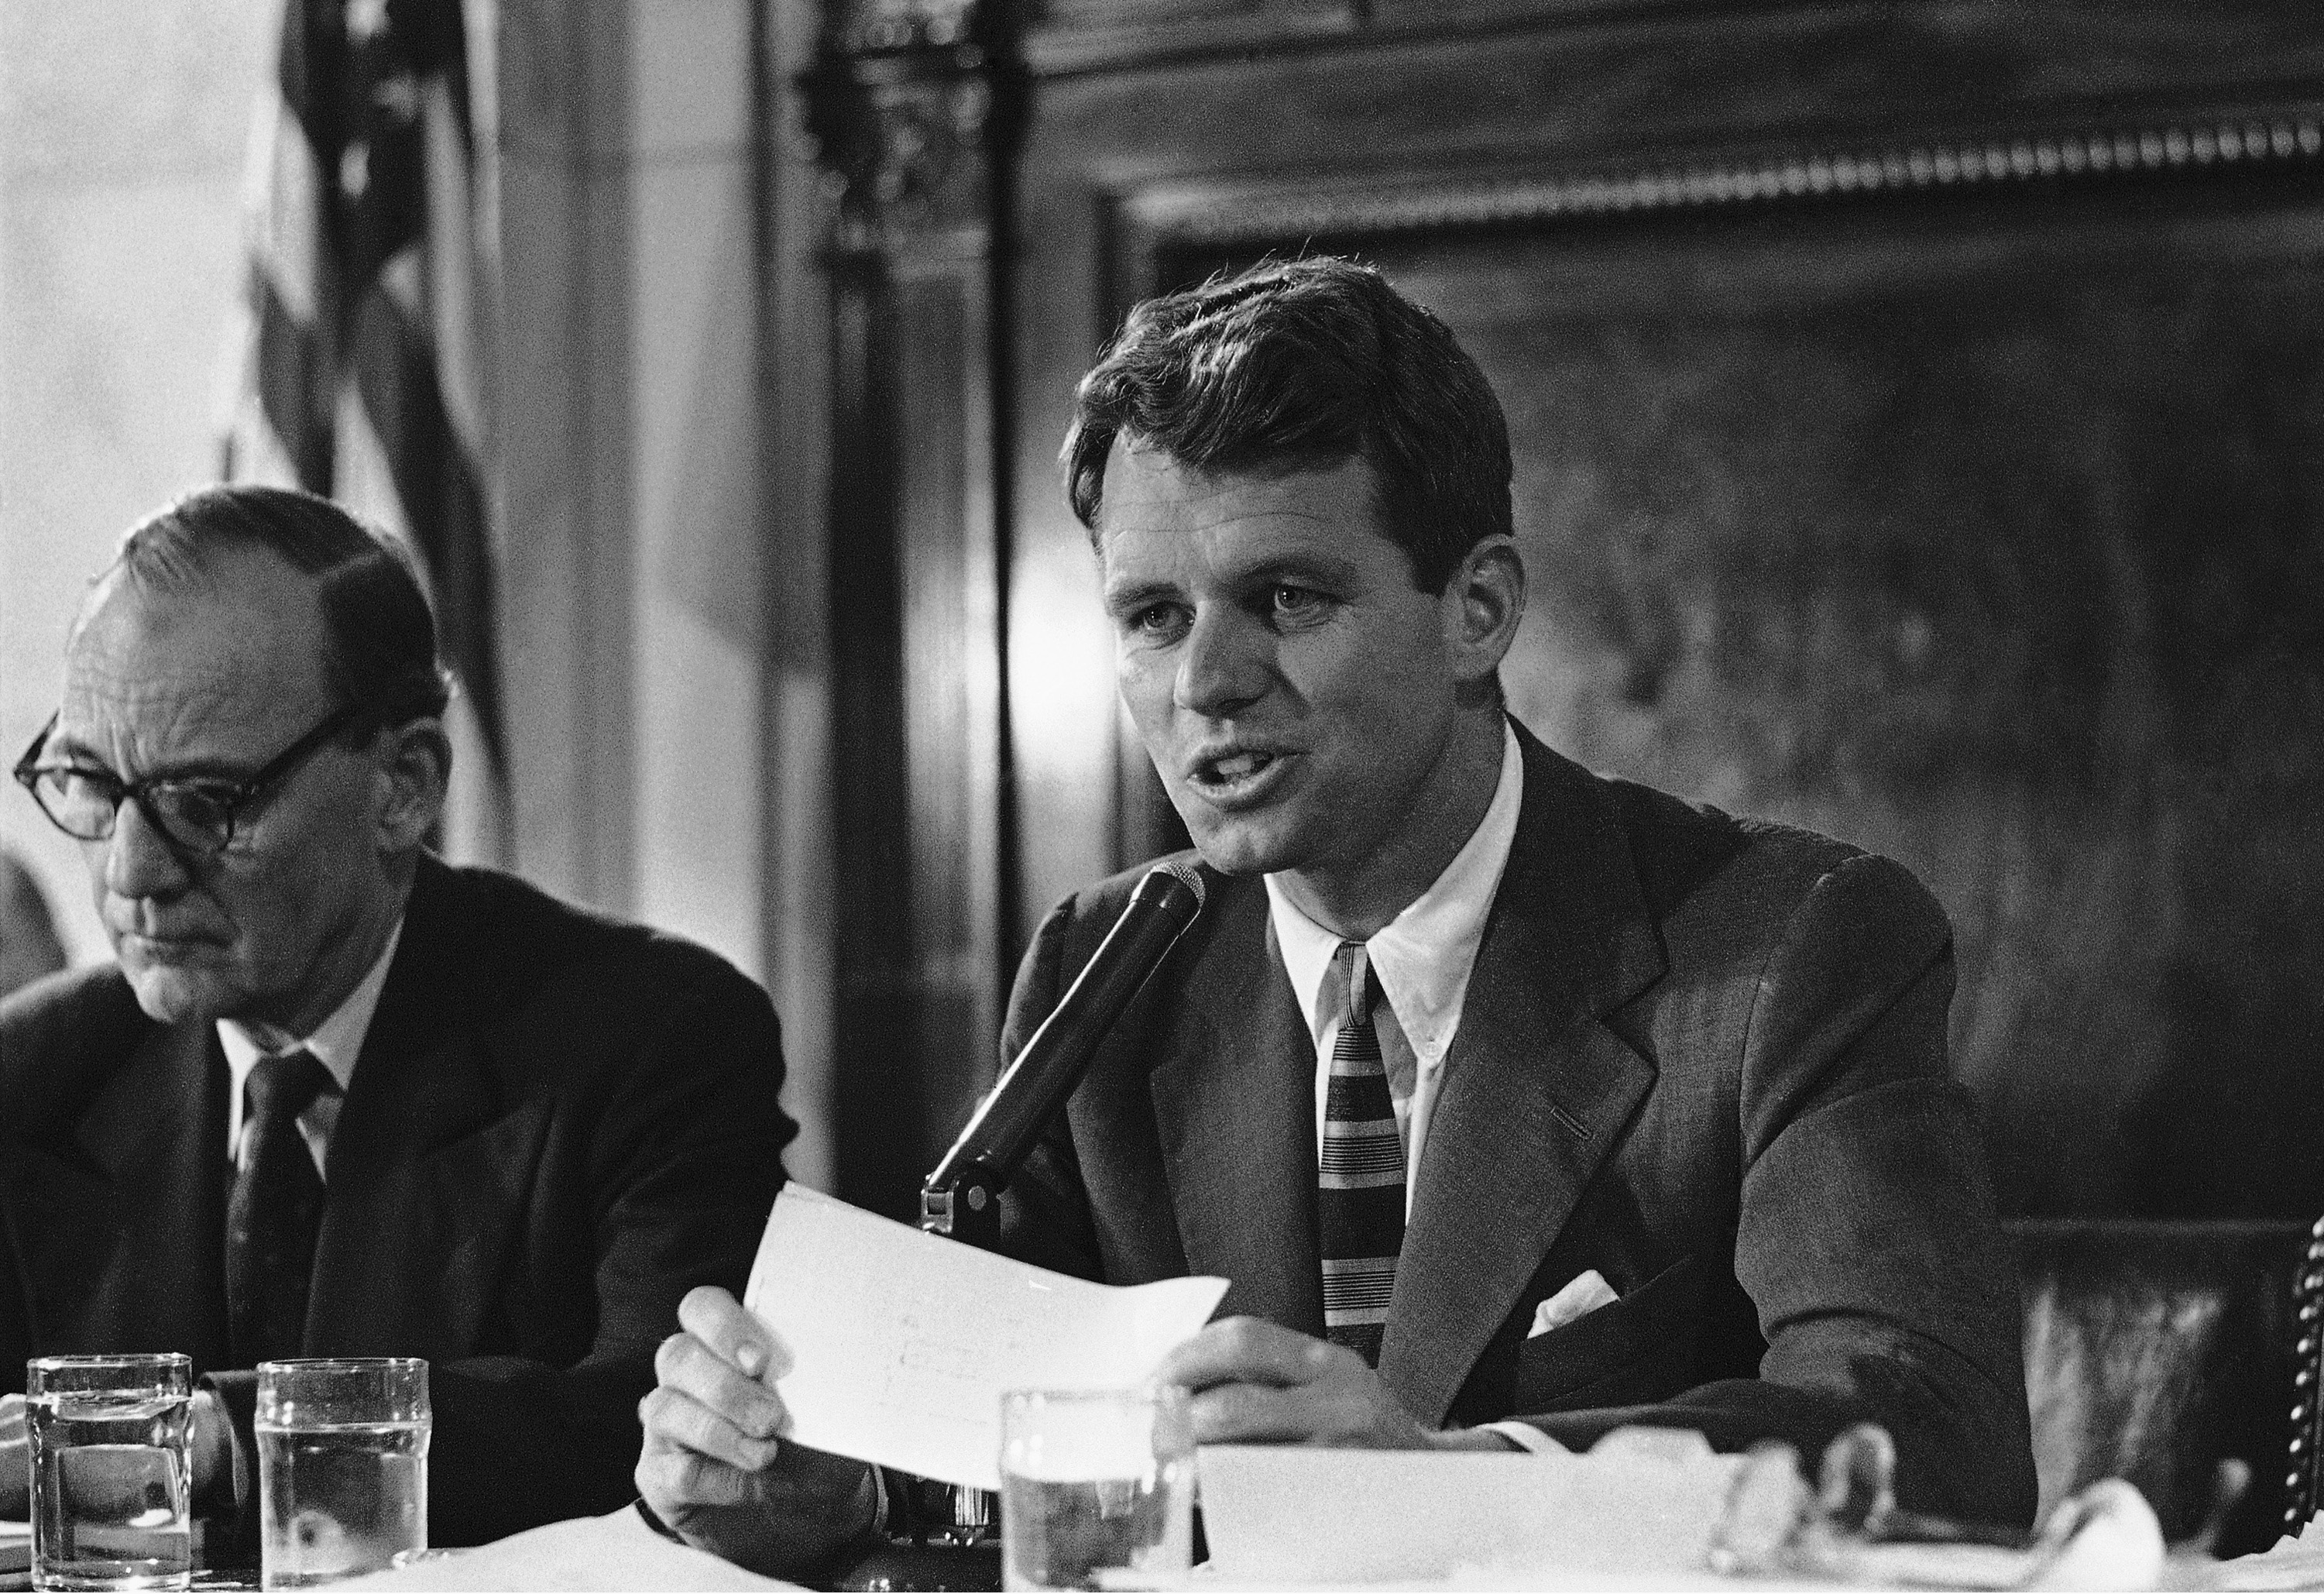 Watch Live: City leaders honor life of Robert F. Kennedy on anniversary of his assassination - WISH-TV | Indianapolis News | Indiana Weather | Indiana Traffic